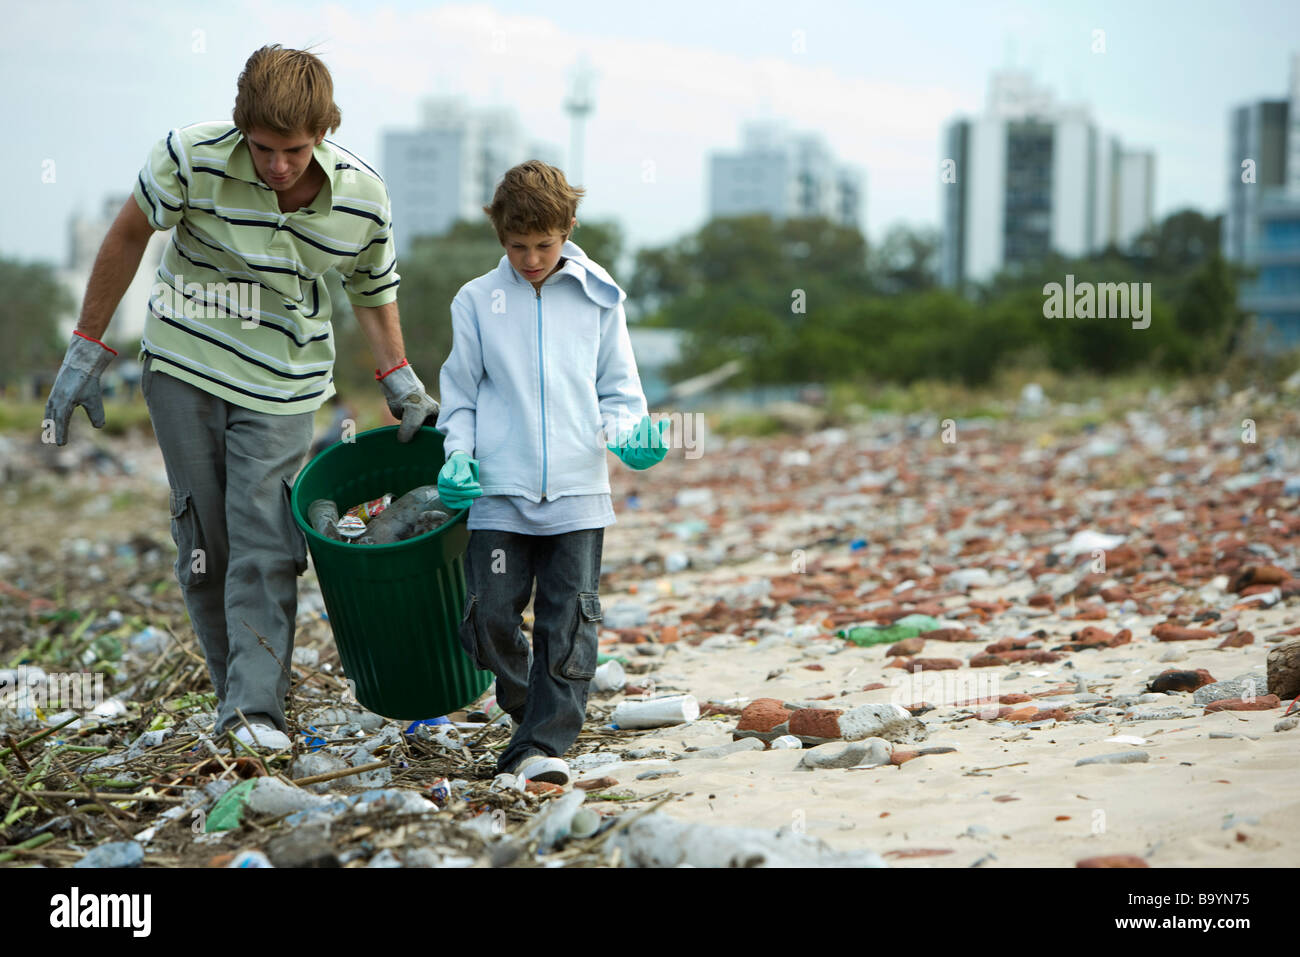 Young male and boy collecting recyclable materials in garbage dump - Stock Image